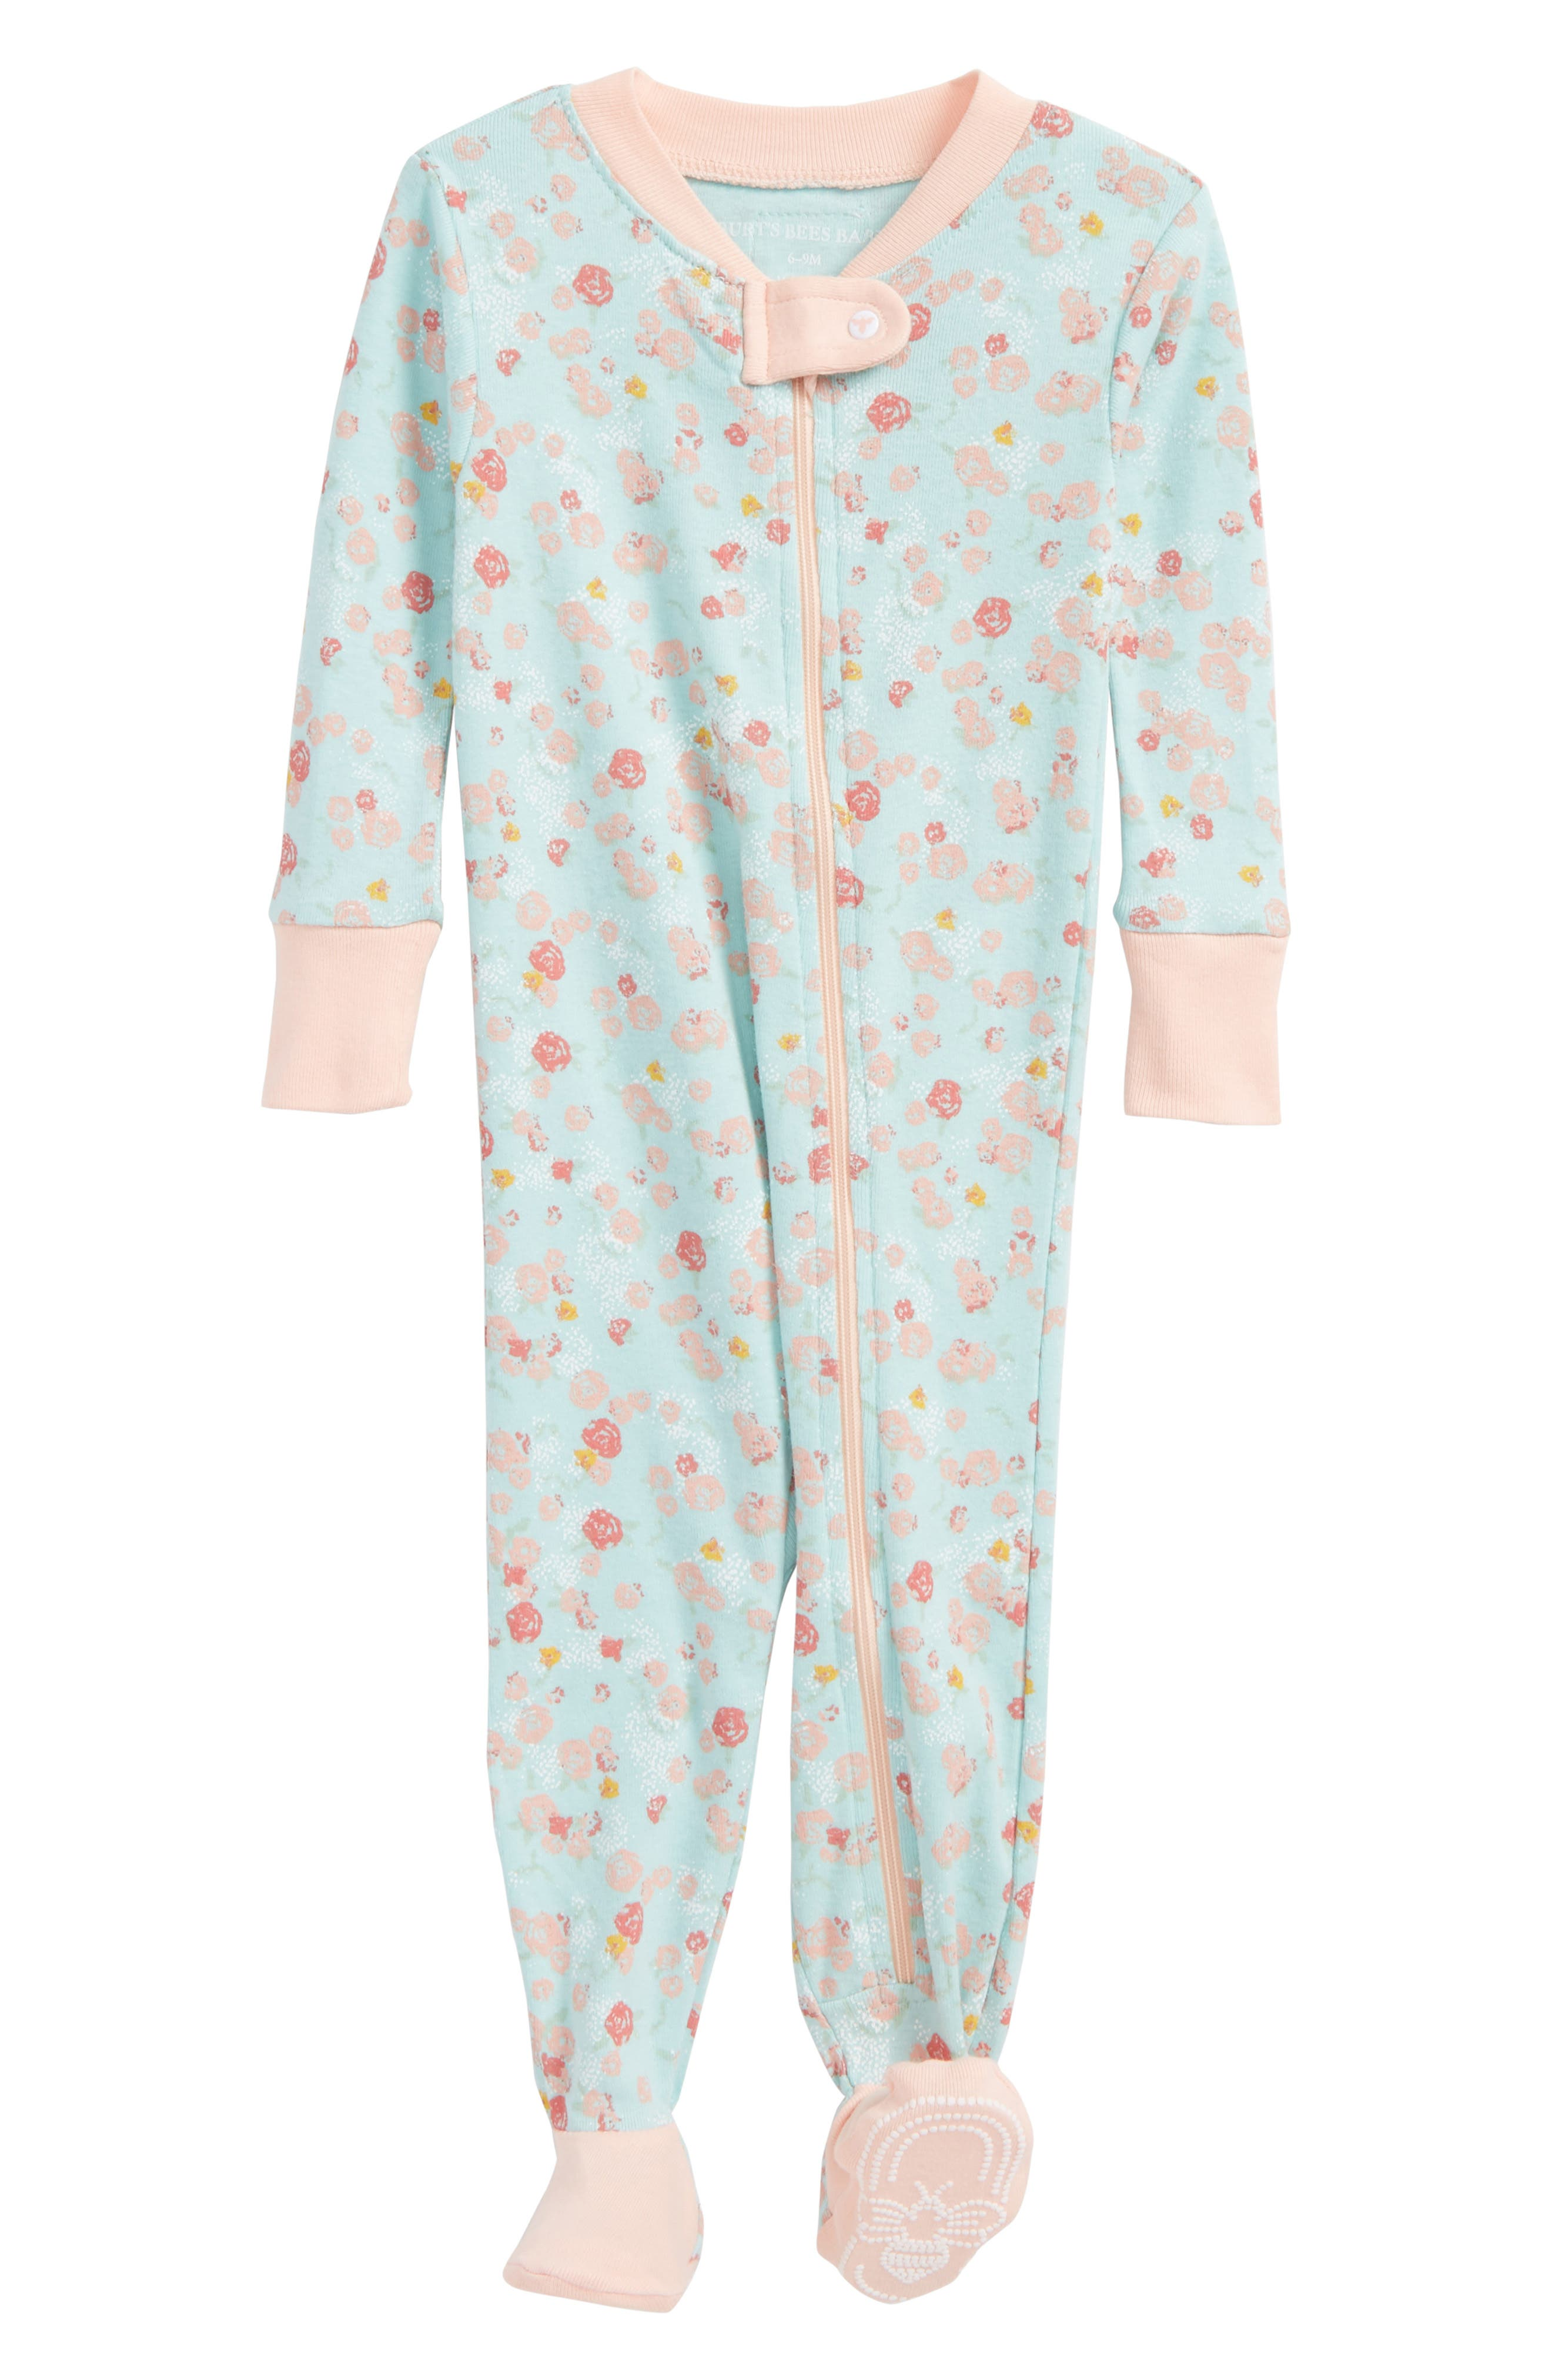 Burt's Bees Baby Ditsy Floral Lightweight Organic Cotton Fitted One-Piece Footie Pajamas (Baby Girls)